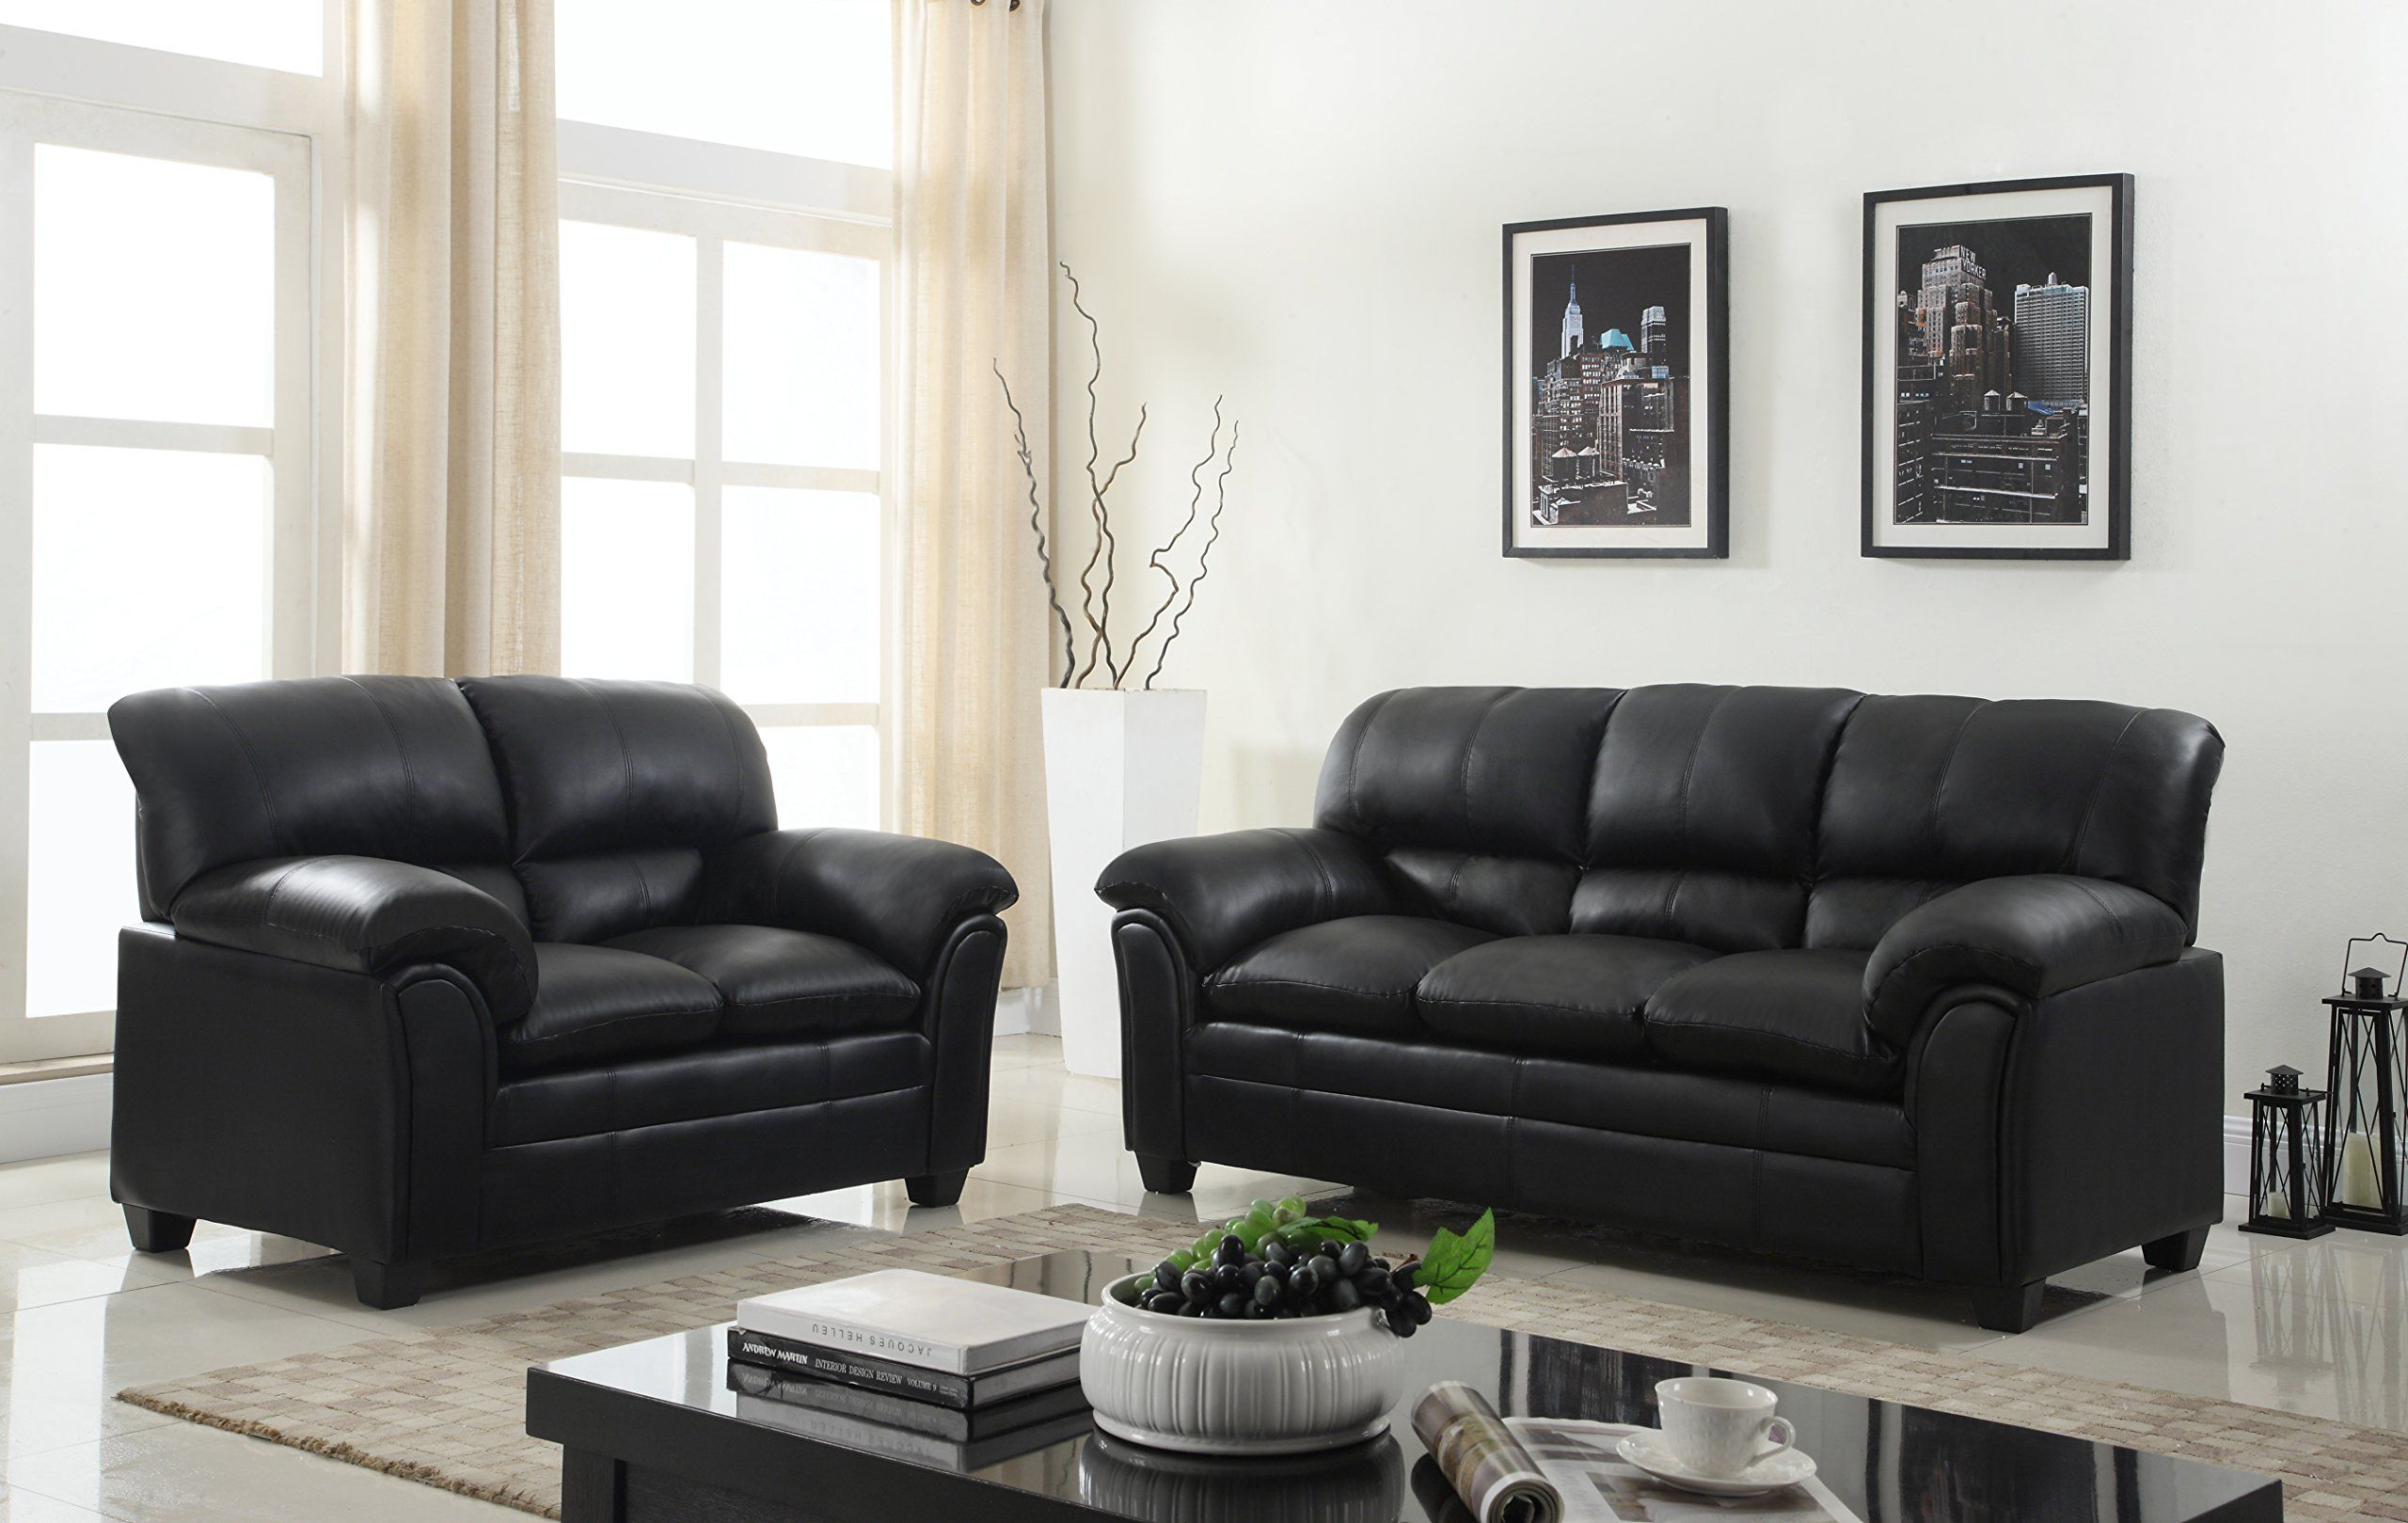 Gtu Furniture New Bonded Leather Sofa And Loveseat Living Room Furniture Set Leather Living Room Furniture Loveseat Living Room Leather Sofa And Loveseat